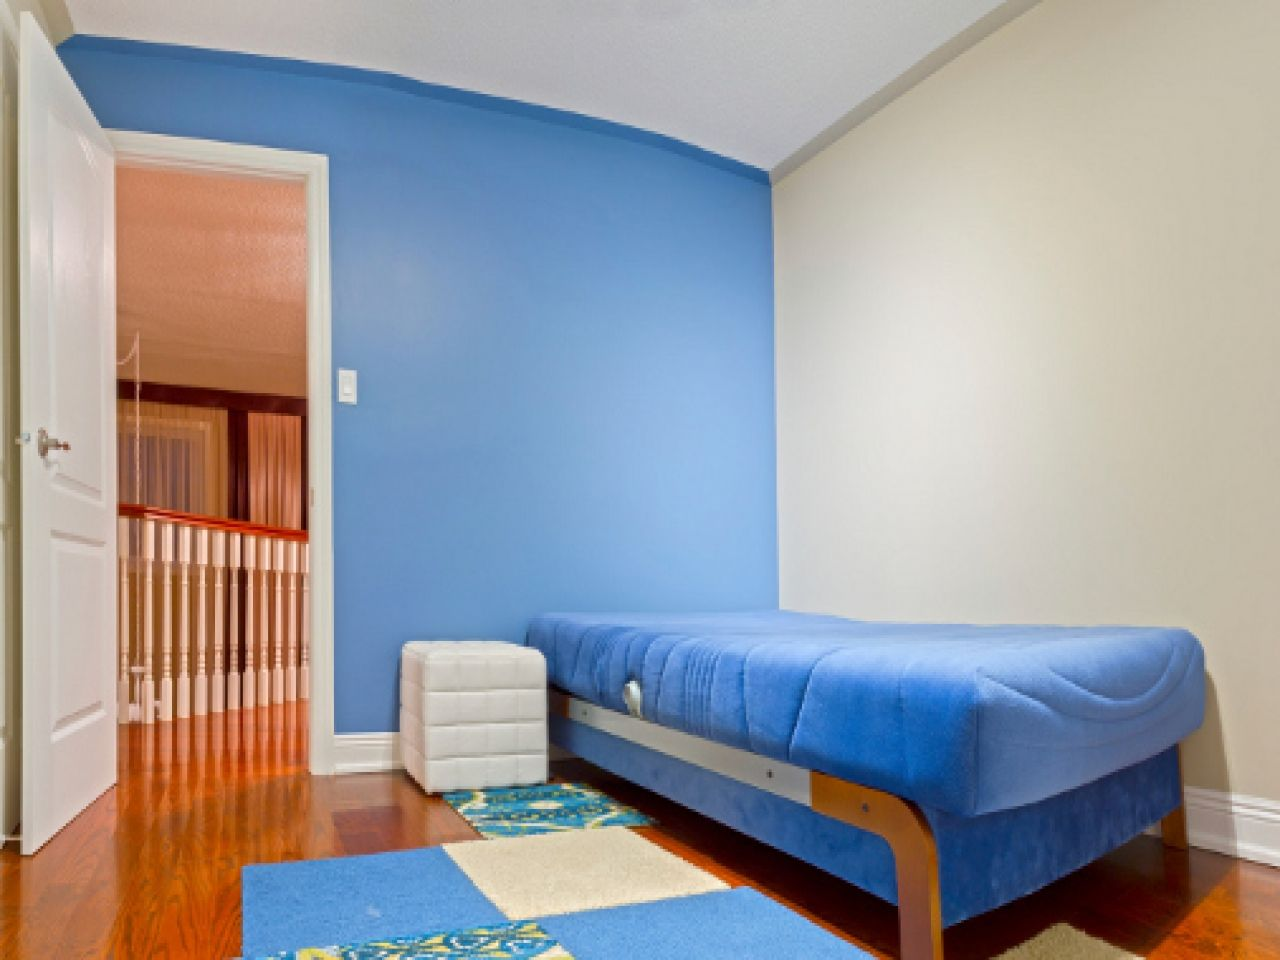 Paint Color Combinations Calming Blue Boys Room Schemes For